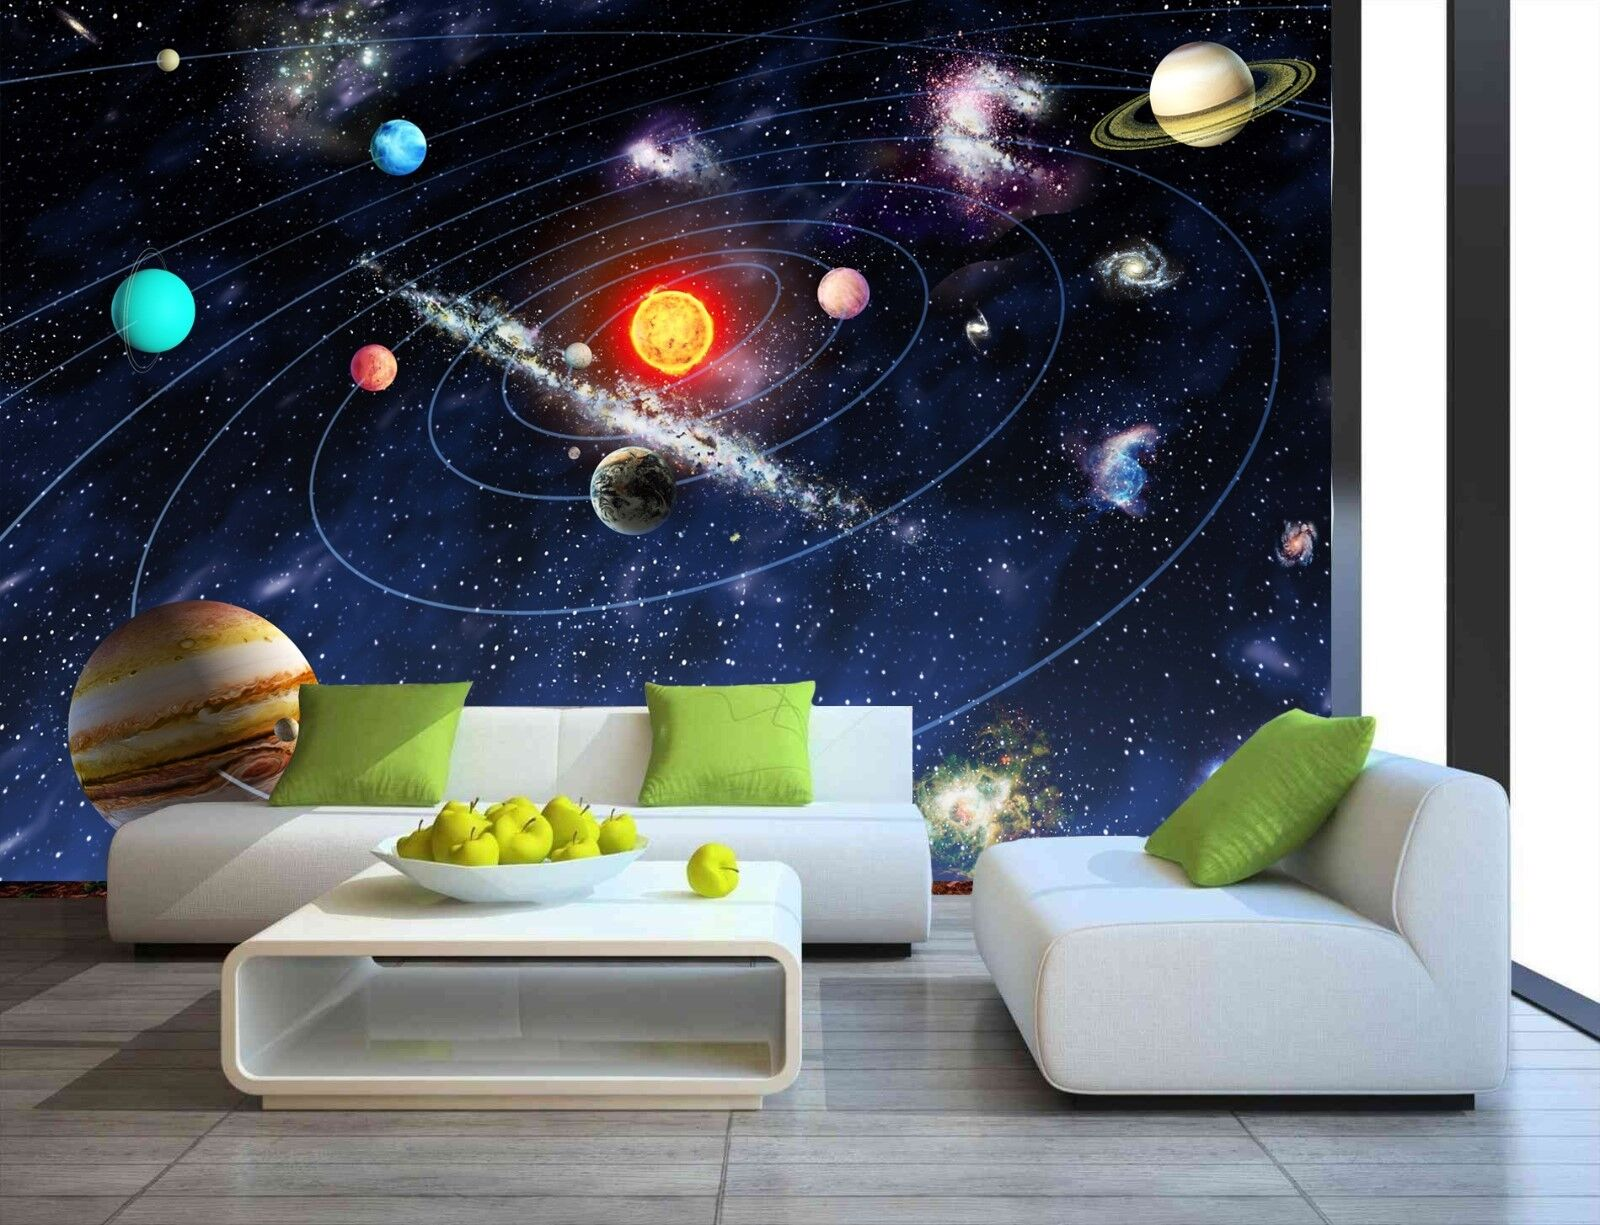 Details About Sun Space Stars Planets Solar System Wallpaper Mural Photo Children Room Poster